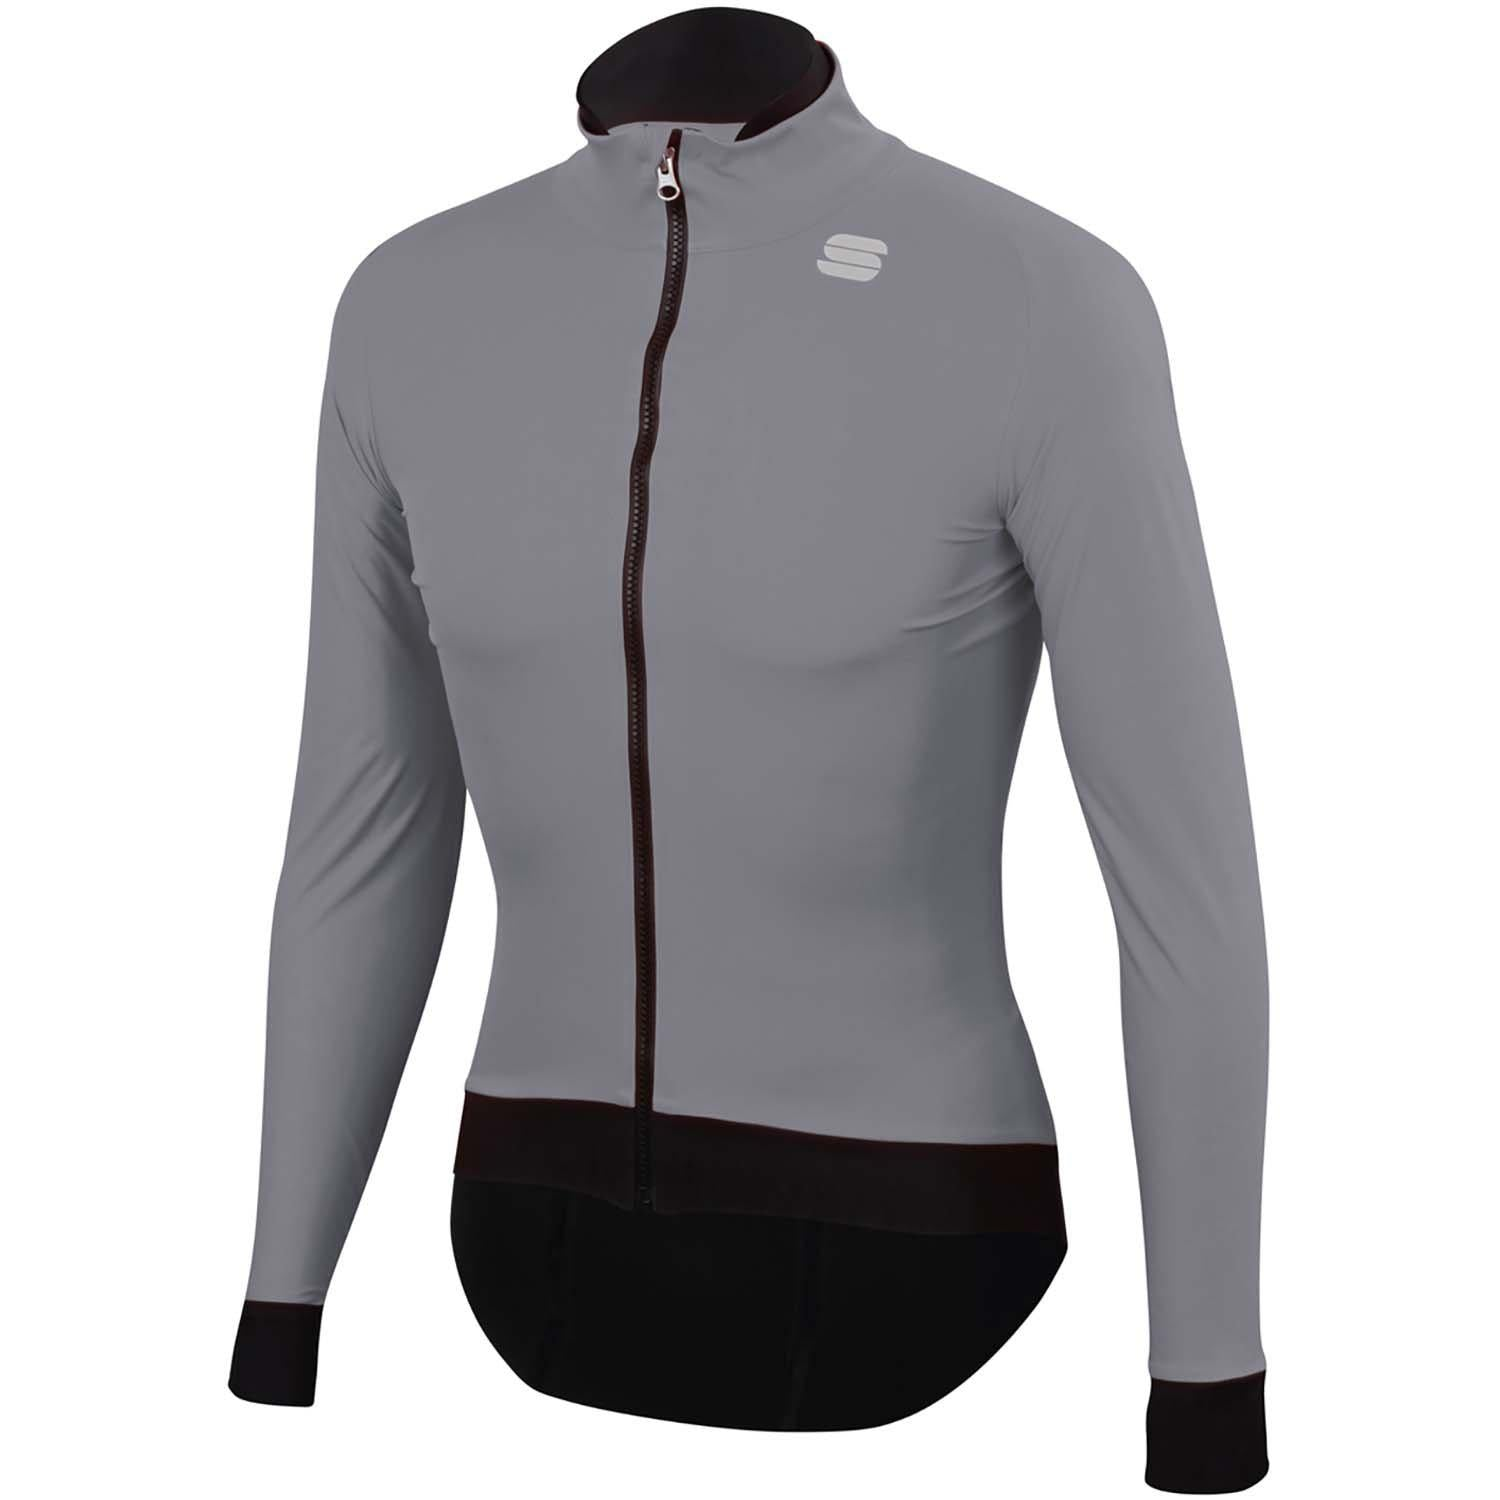 Sportful-Sportful Fiandre Pro Jacket--saddleback-elite-performance-cycling